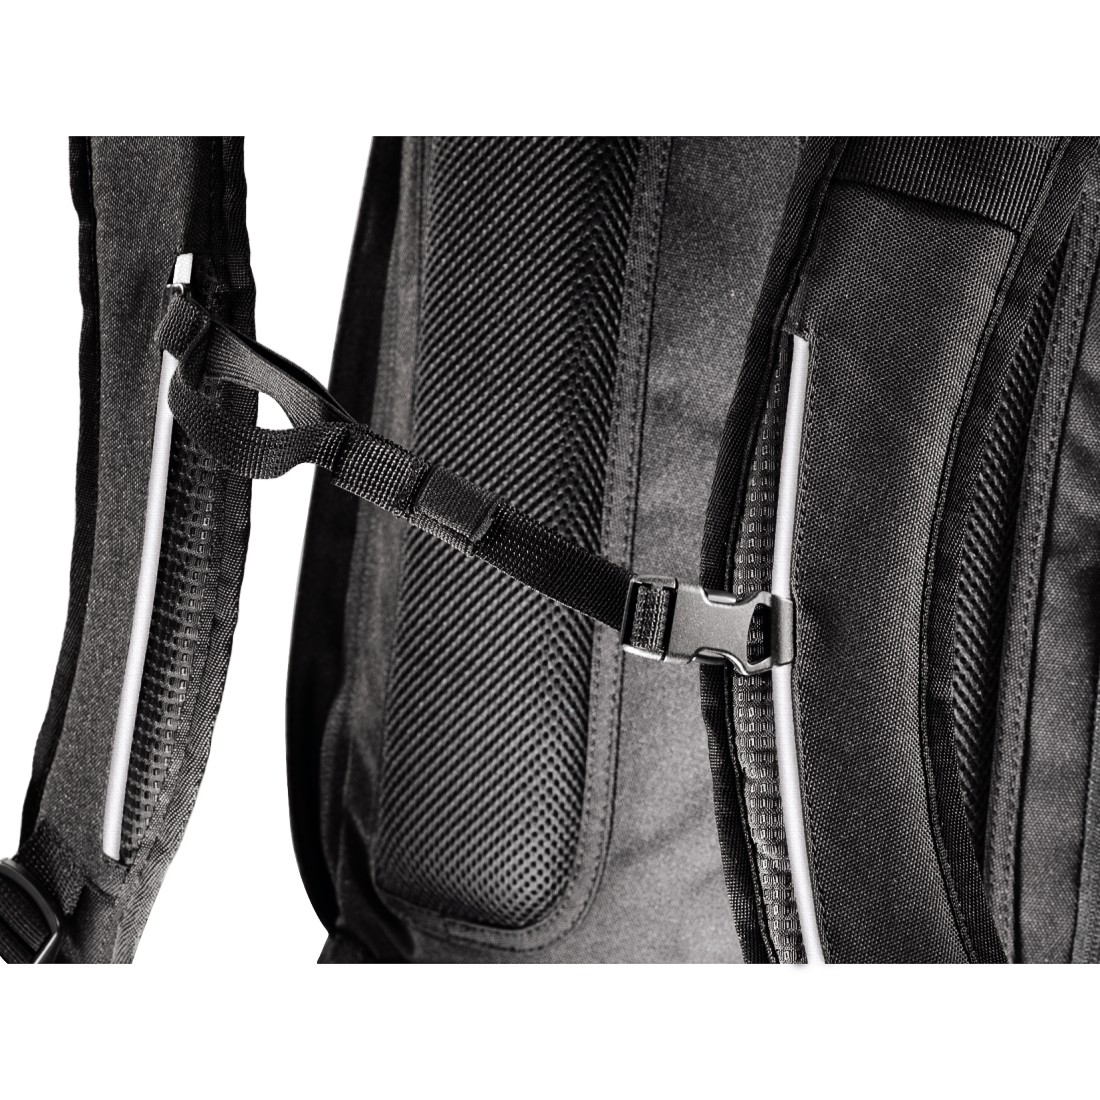 dex4 High-Res Detail 4 - Hama, Daytour Camera Backpack, 180, black